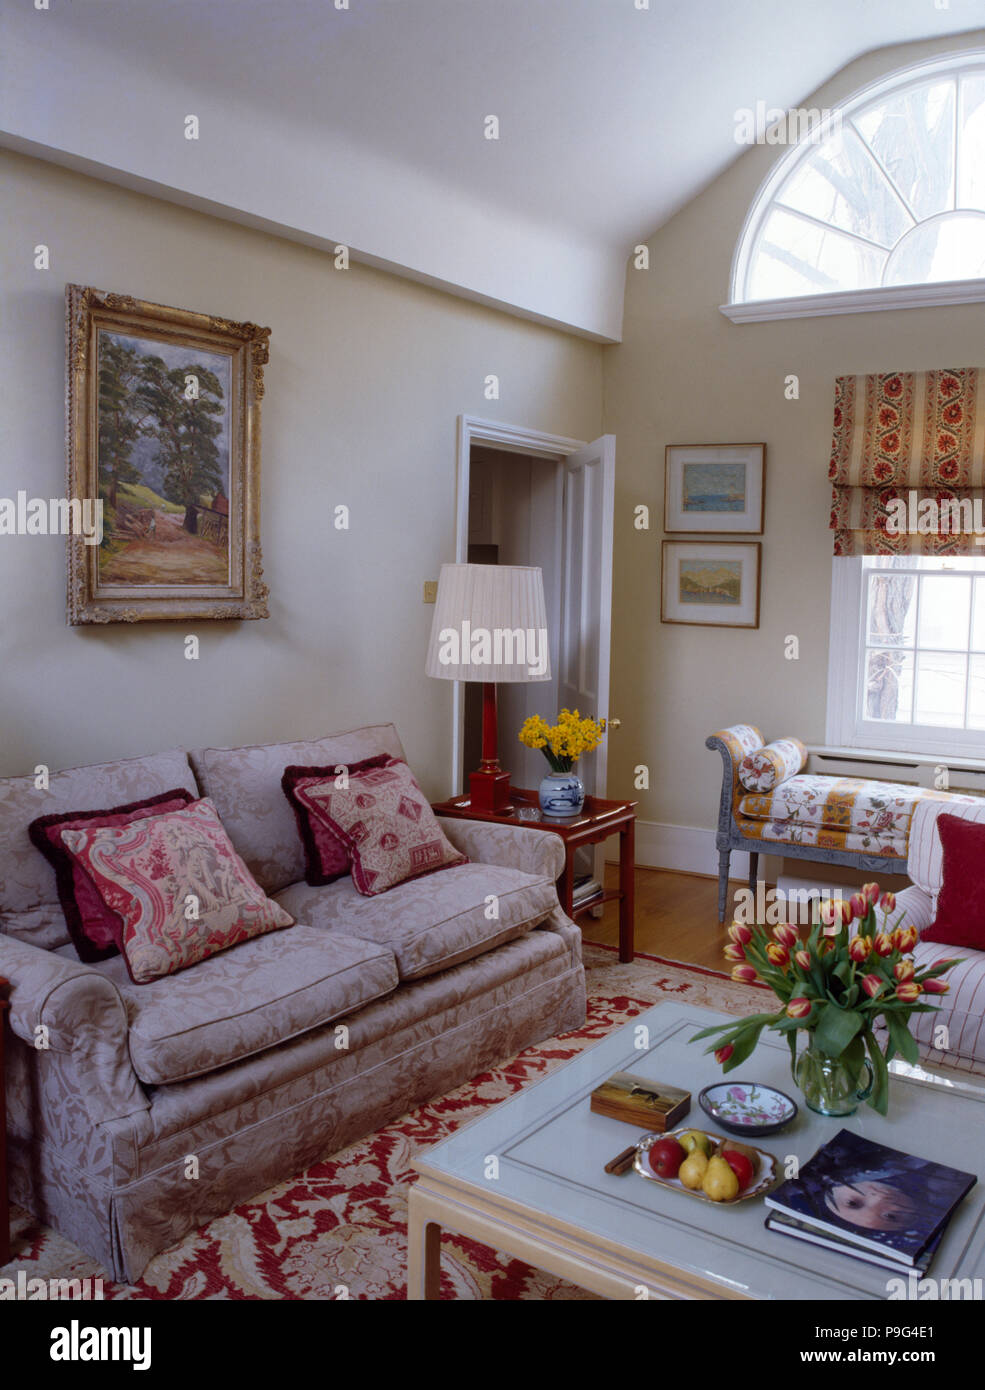 Patterned Cushions On A Neutral Damask Sofa In A Small ...